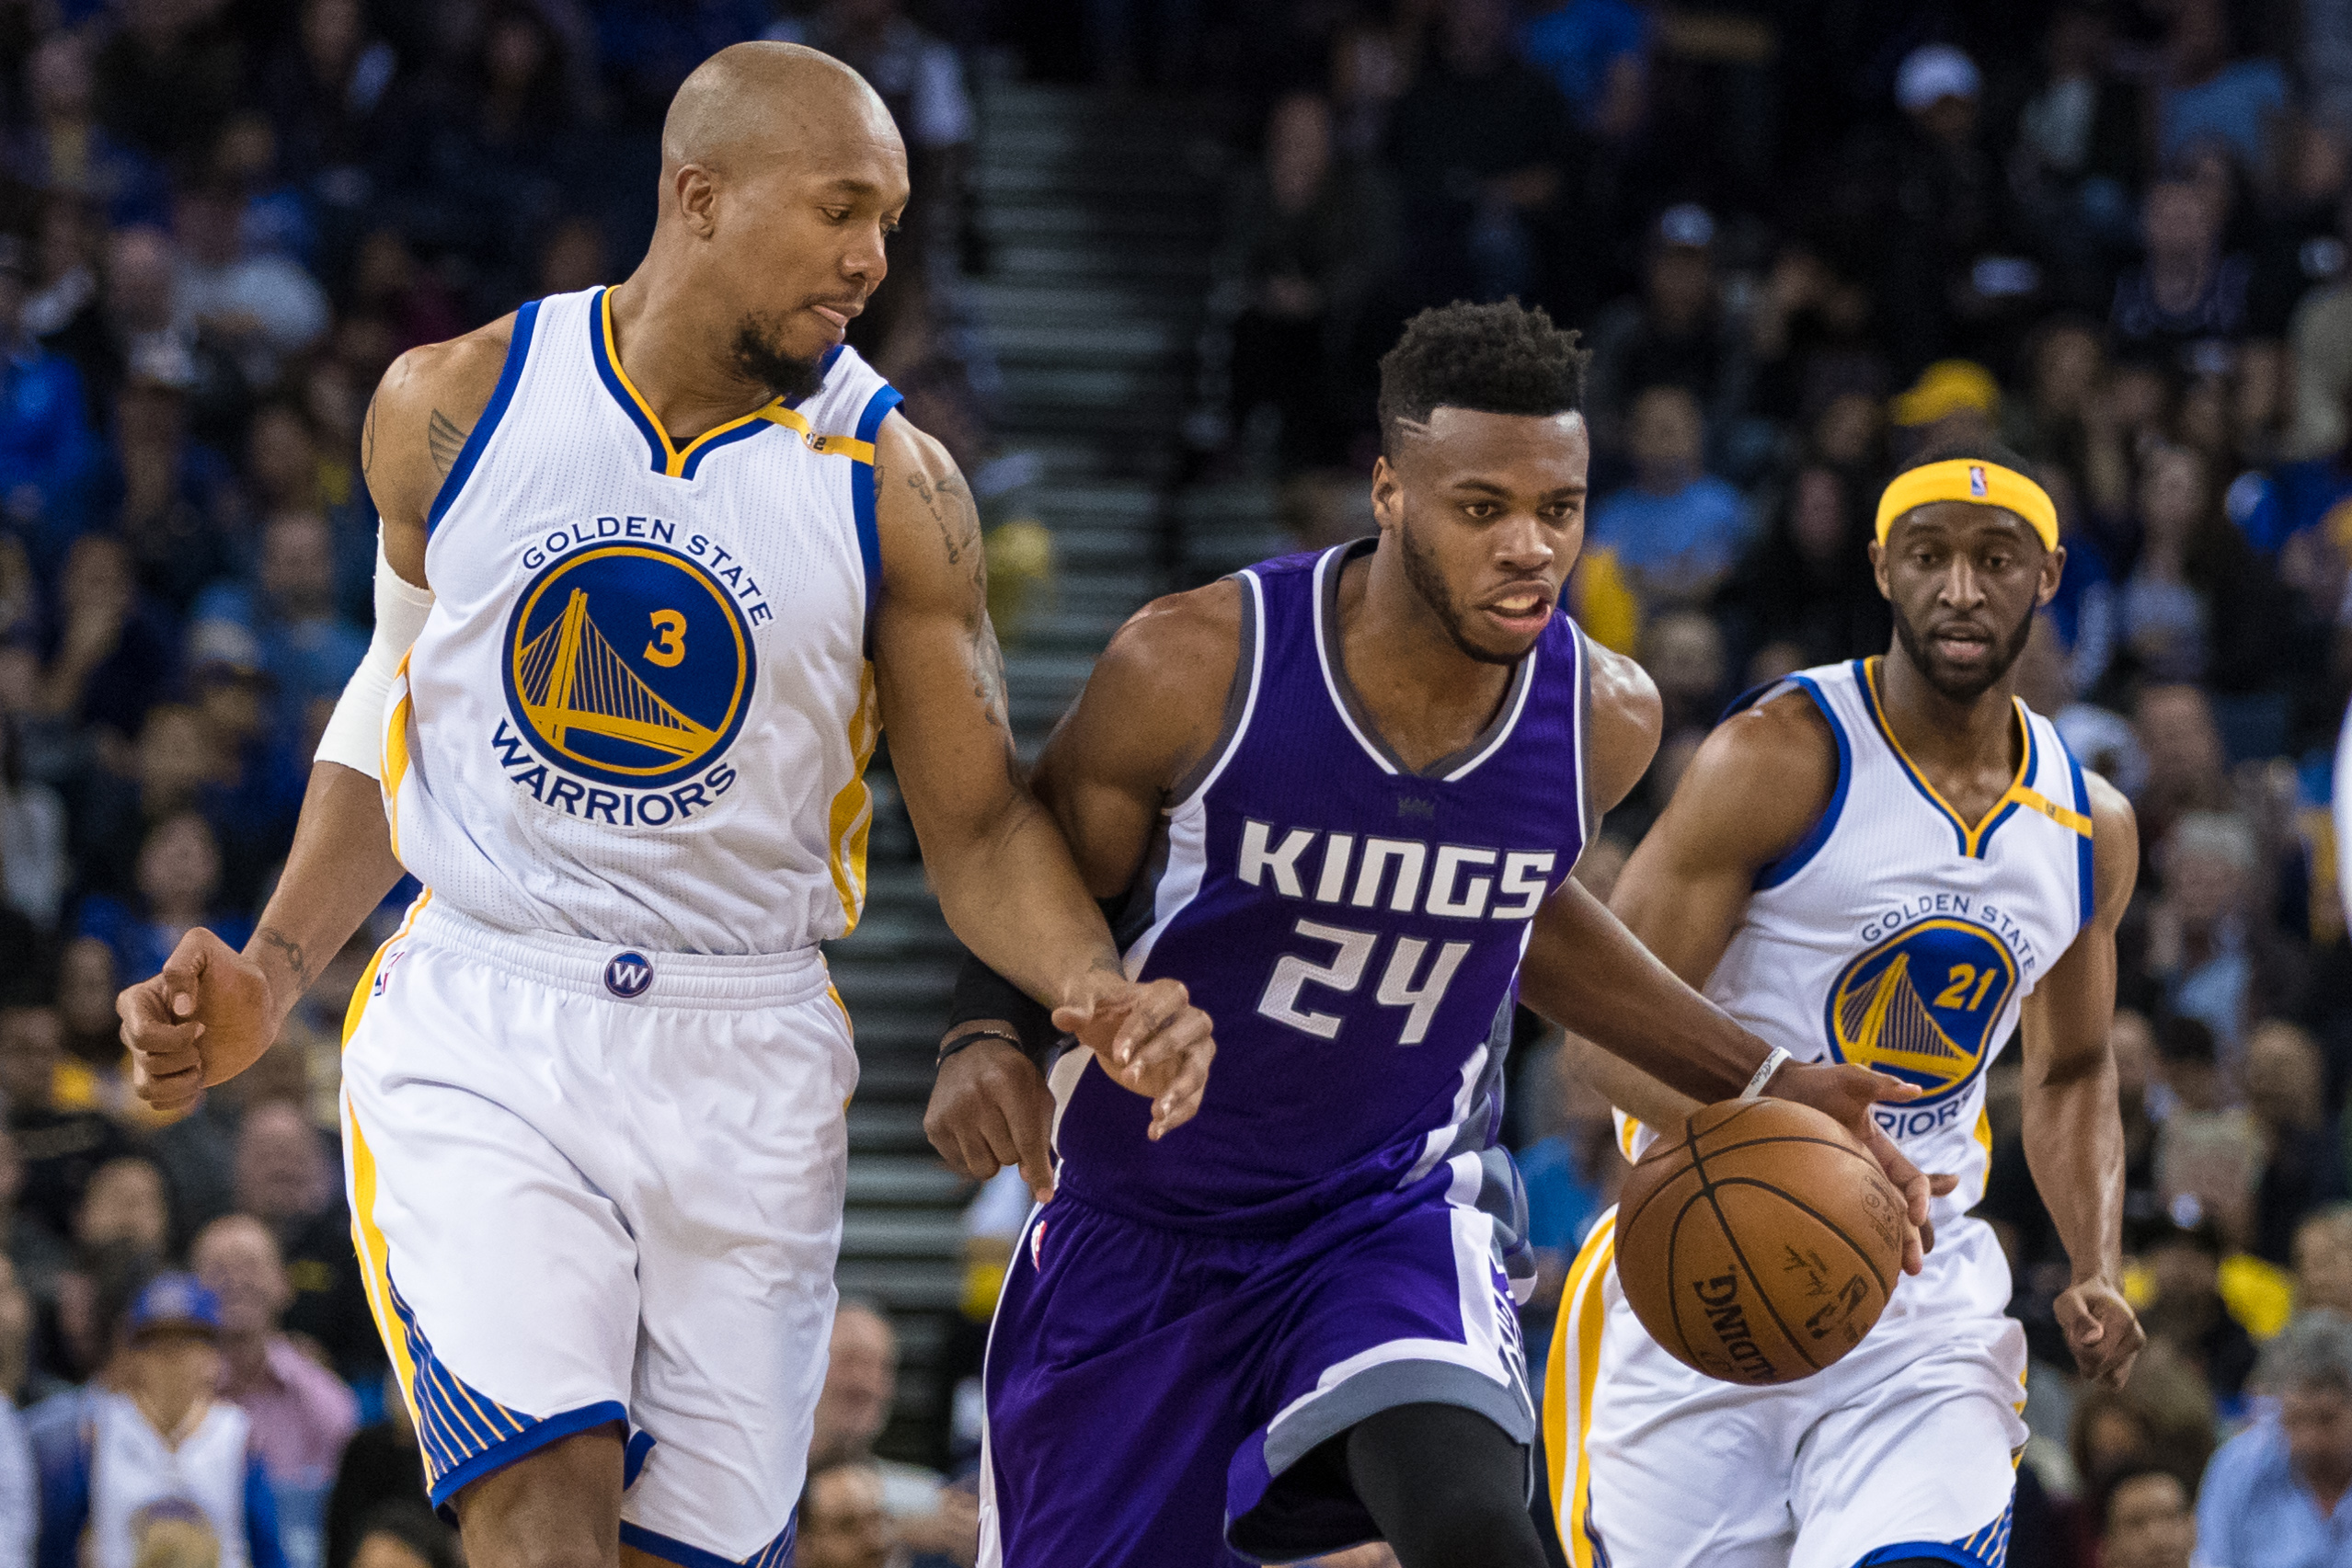 9969390-nba-sacramento-kings-at-golden-state-warriors